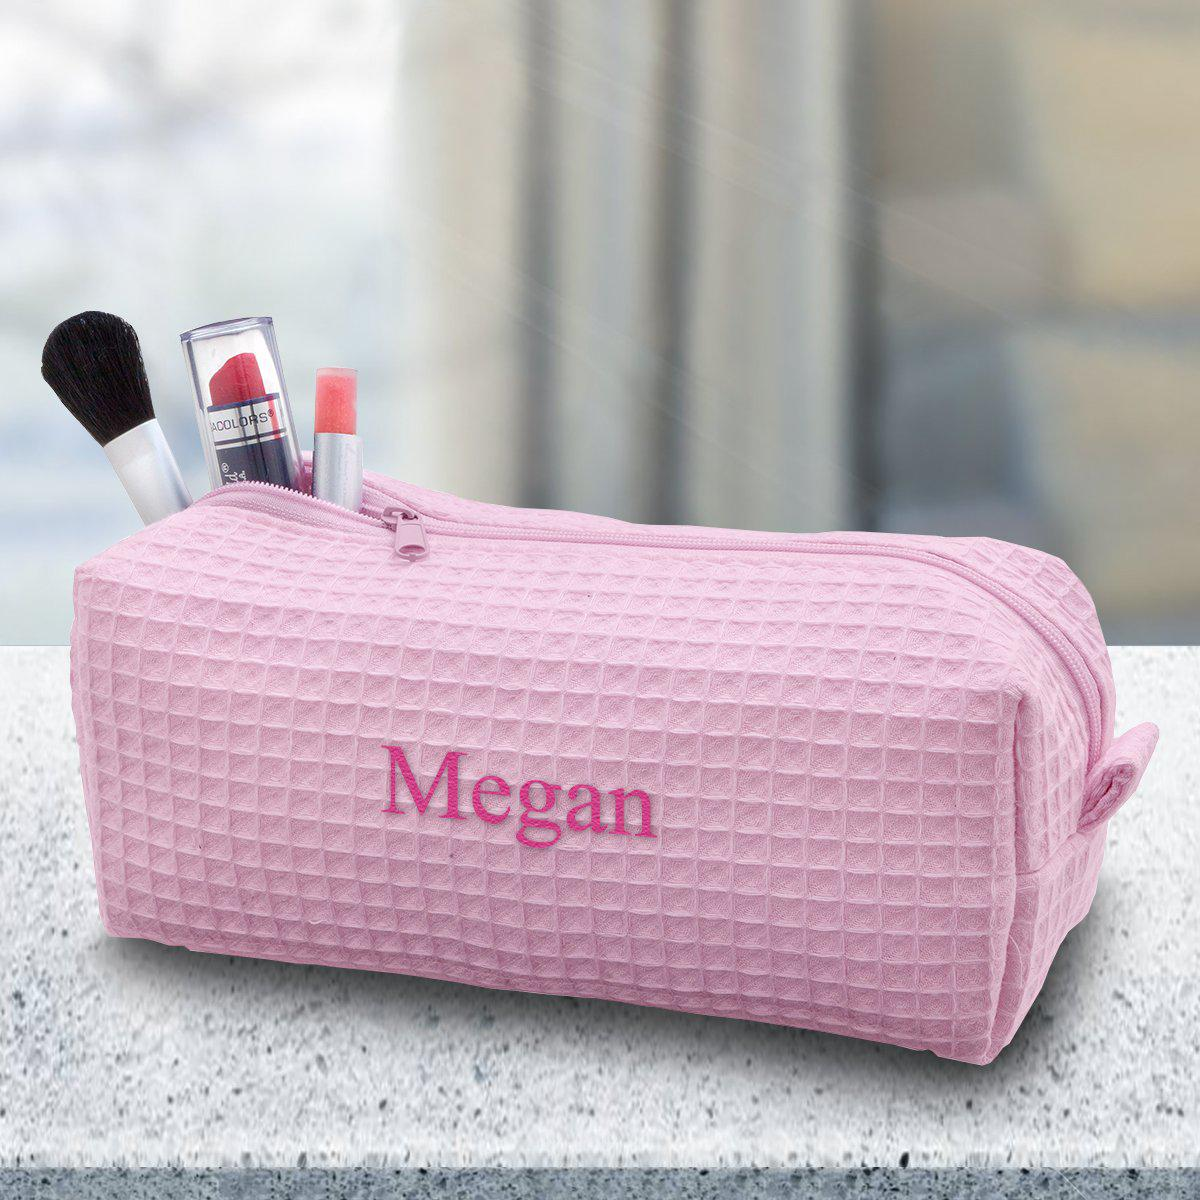 Personalized Makeup Bag Cosmetic Bag Personalized Gift